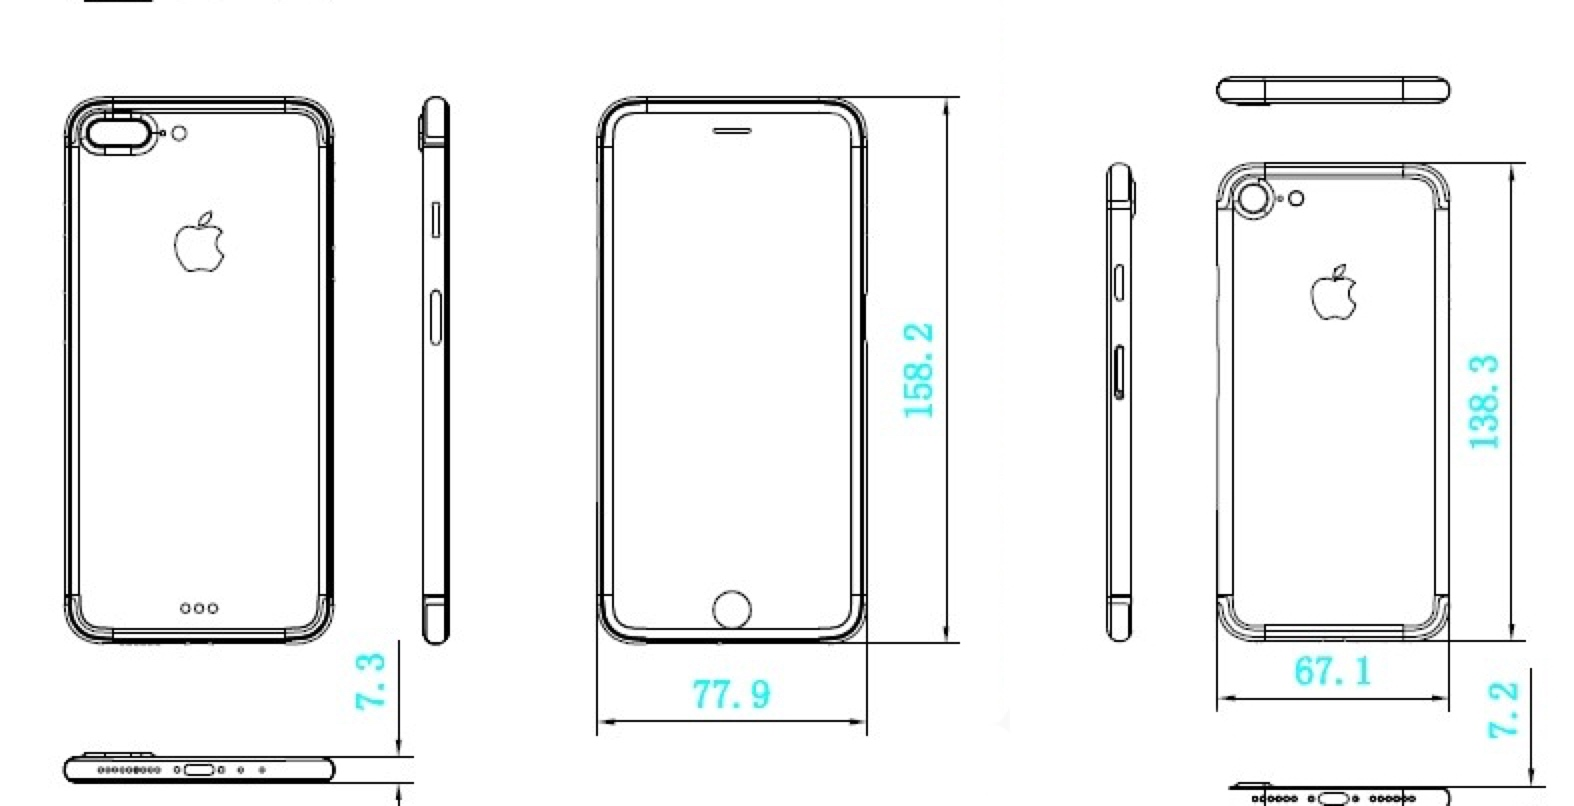 New iPhone 7 schematics suggest similar dimensions, unlikely